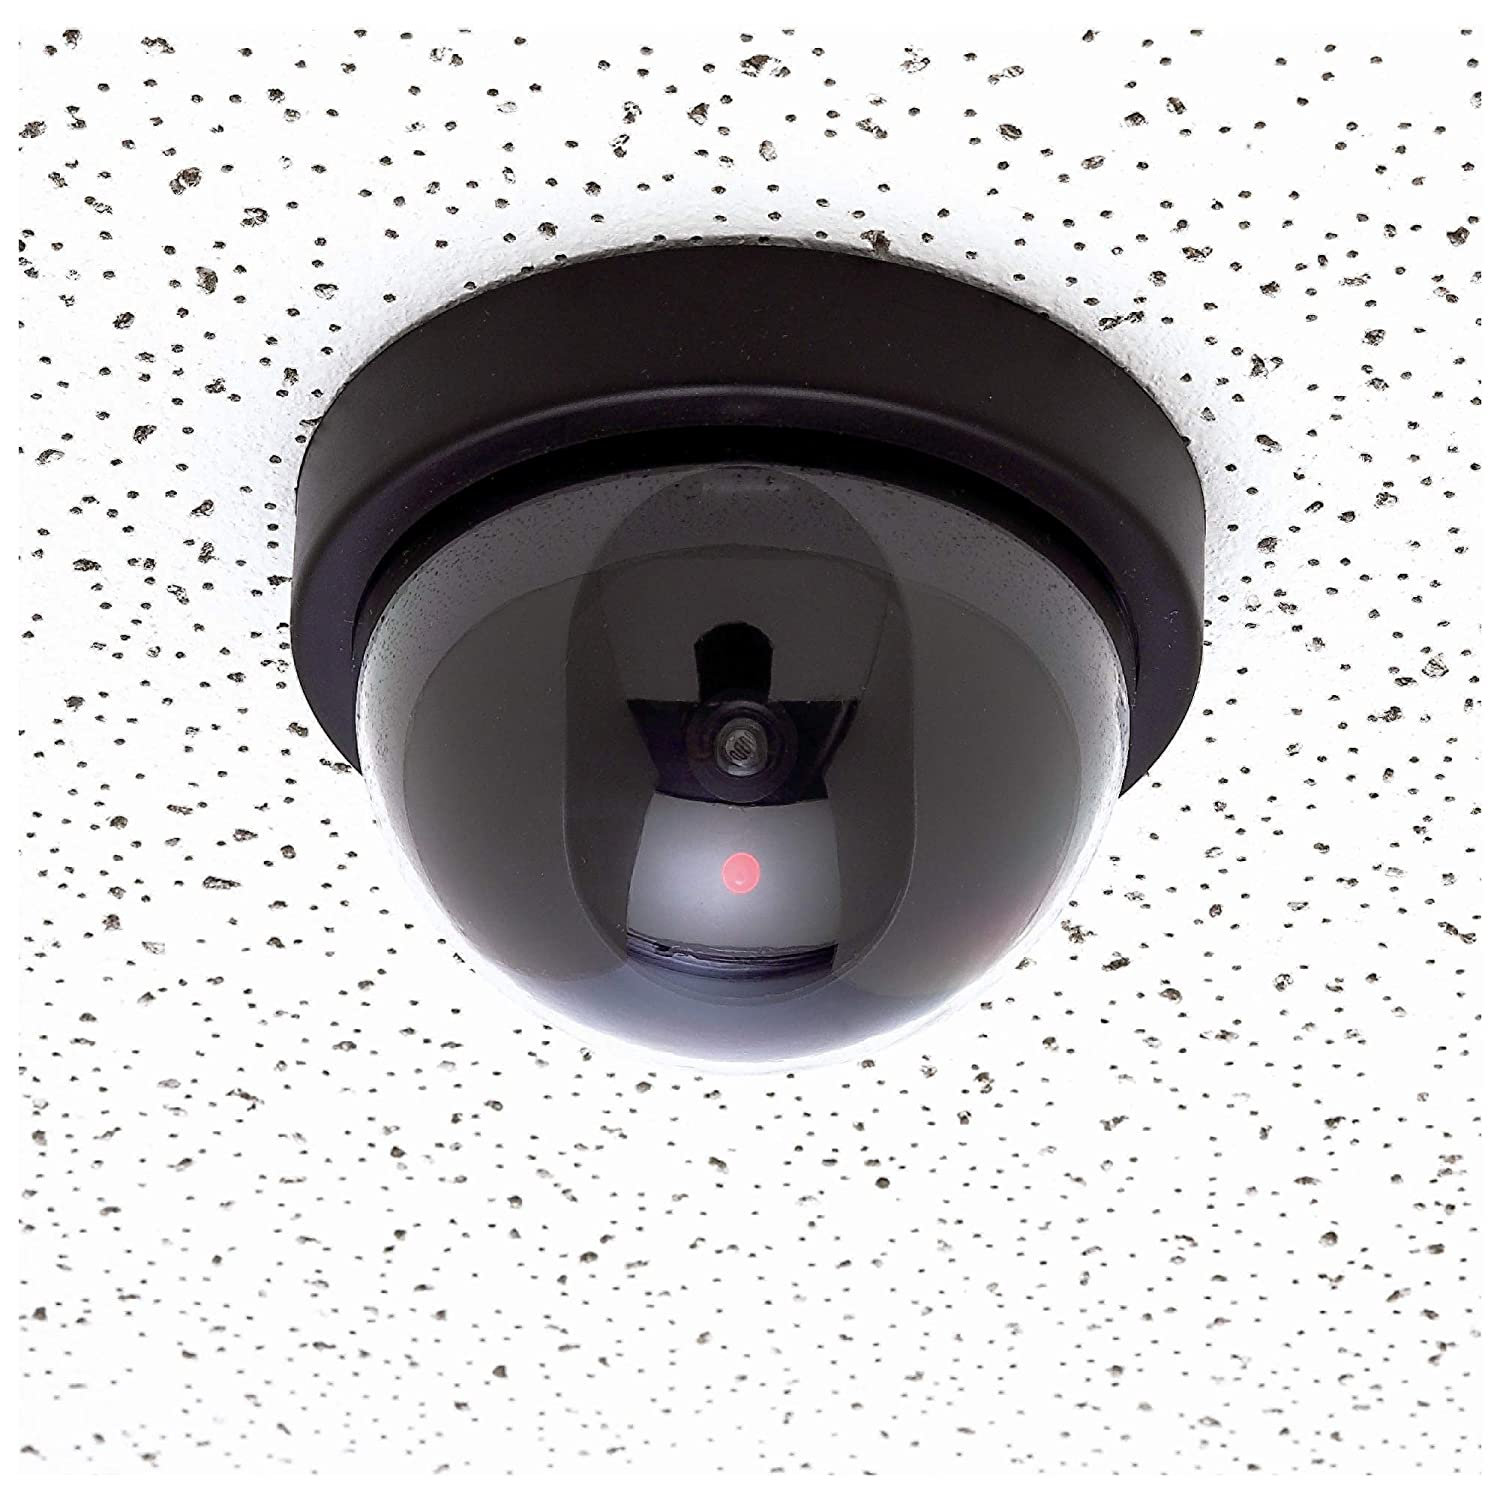 Fake Dummy Security CCTV Dome Camera with Flashing Motion Sensitive Red LED Light for Indoor and Outdoor Use Mitaki-Japan 4 Piece